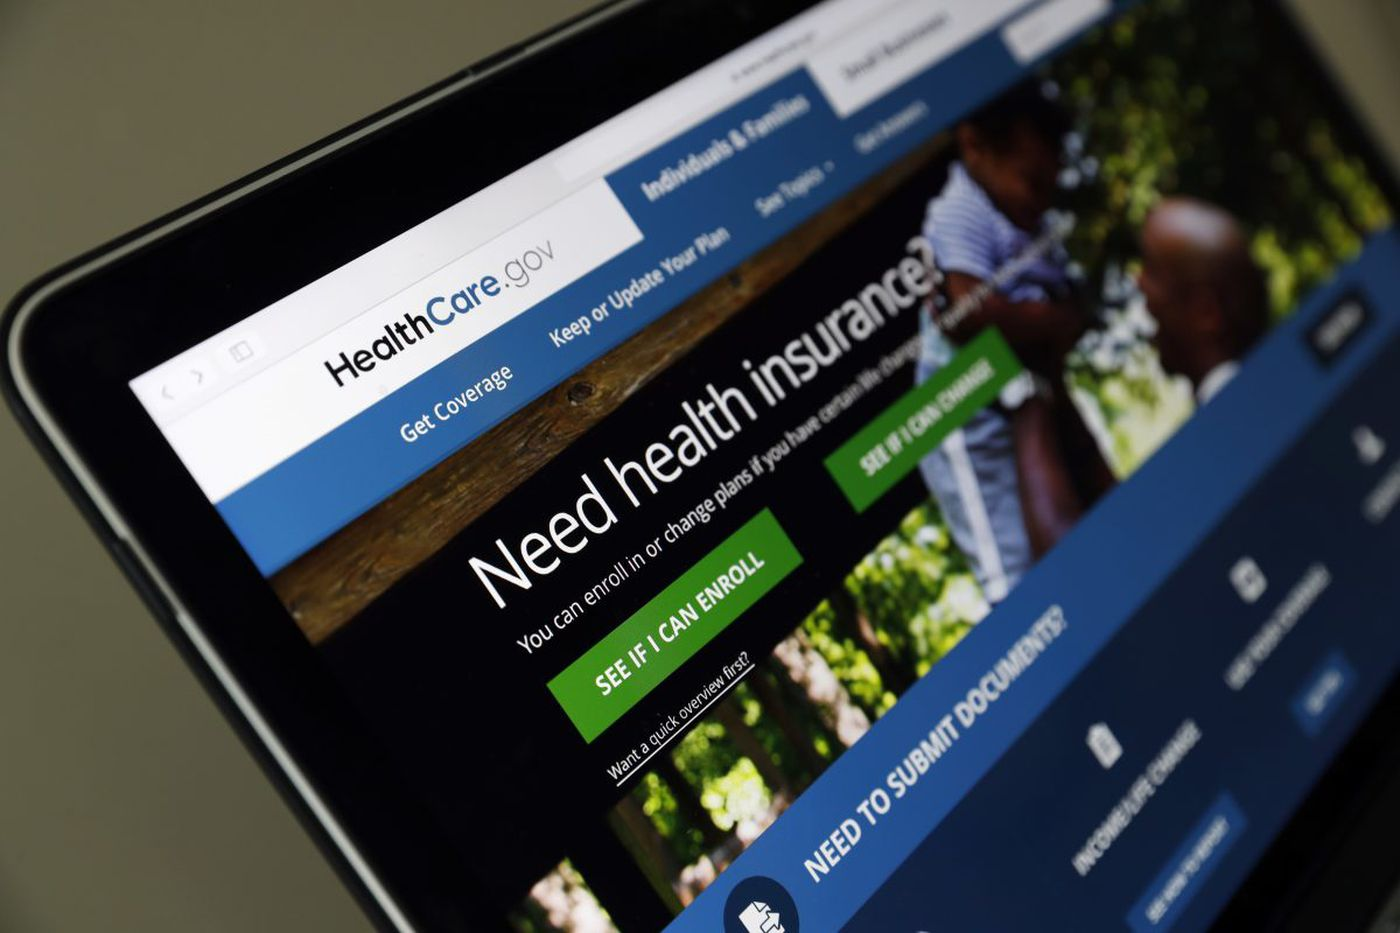 Pa. approves steep 2018 ACA exchange percentage increases, hopes to minimize impact